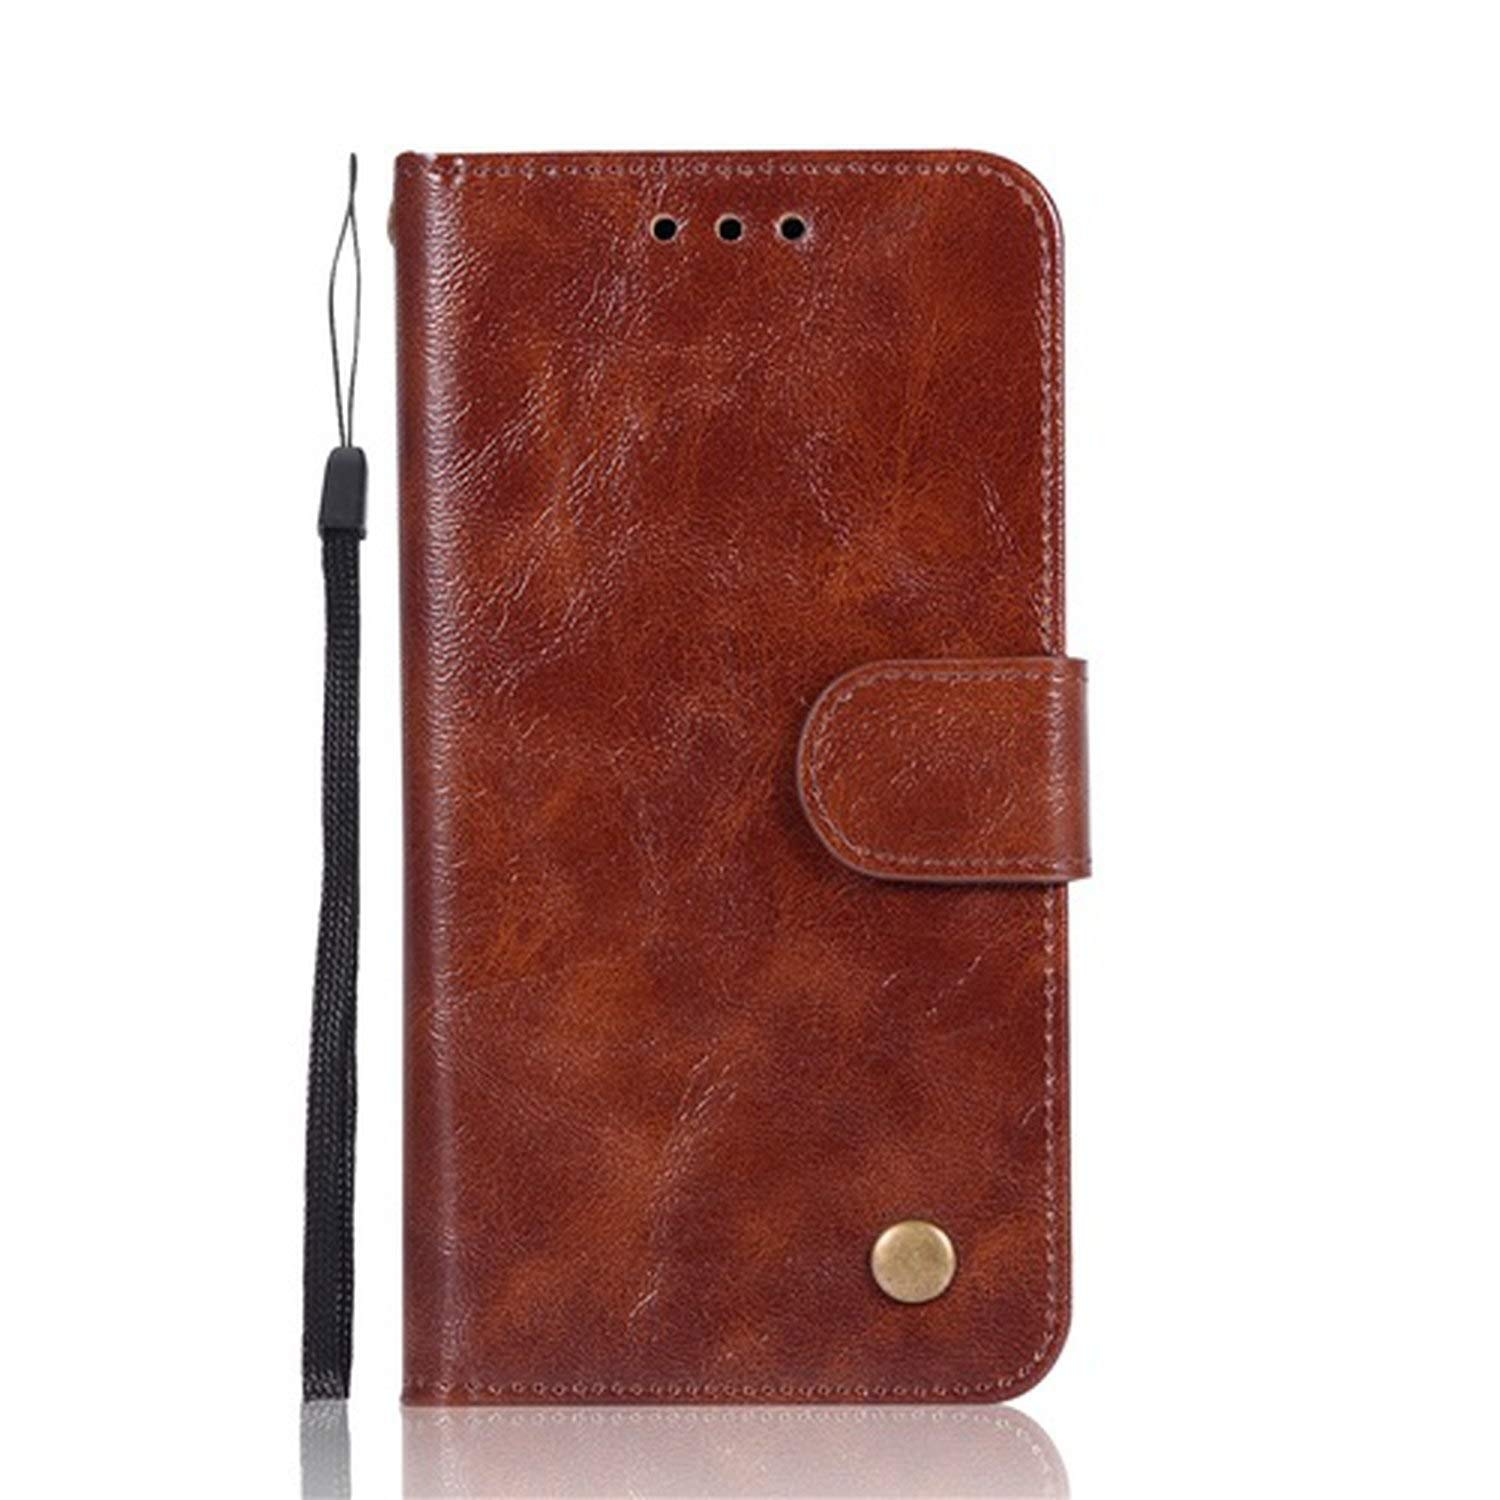 Retro Genuine Leather Flip Case for LG V30 K10 2018 G6 Q6 Q8 Stylo 2 3 4 Plus X G7 ThinQ Power Style Wallet Cover Purse,Brown,for LG Q8